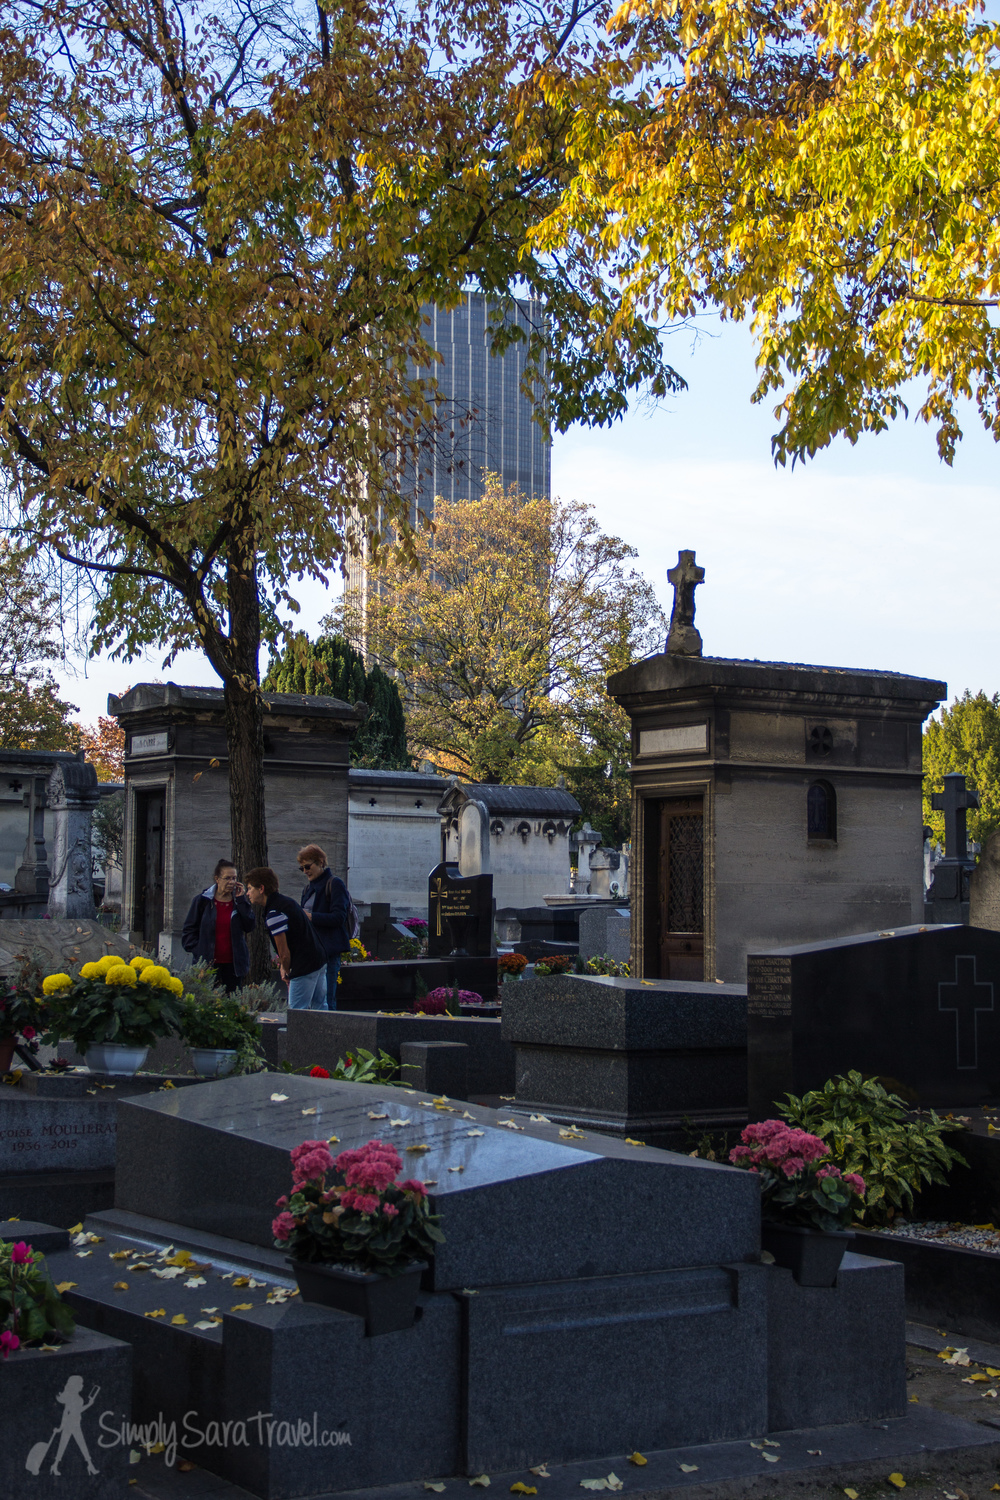 Tour Montparnasse towering in the background is a constant reminder of which cemetery you are visiting!